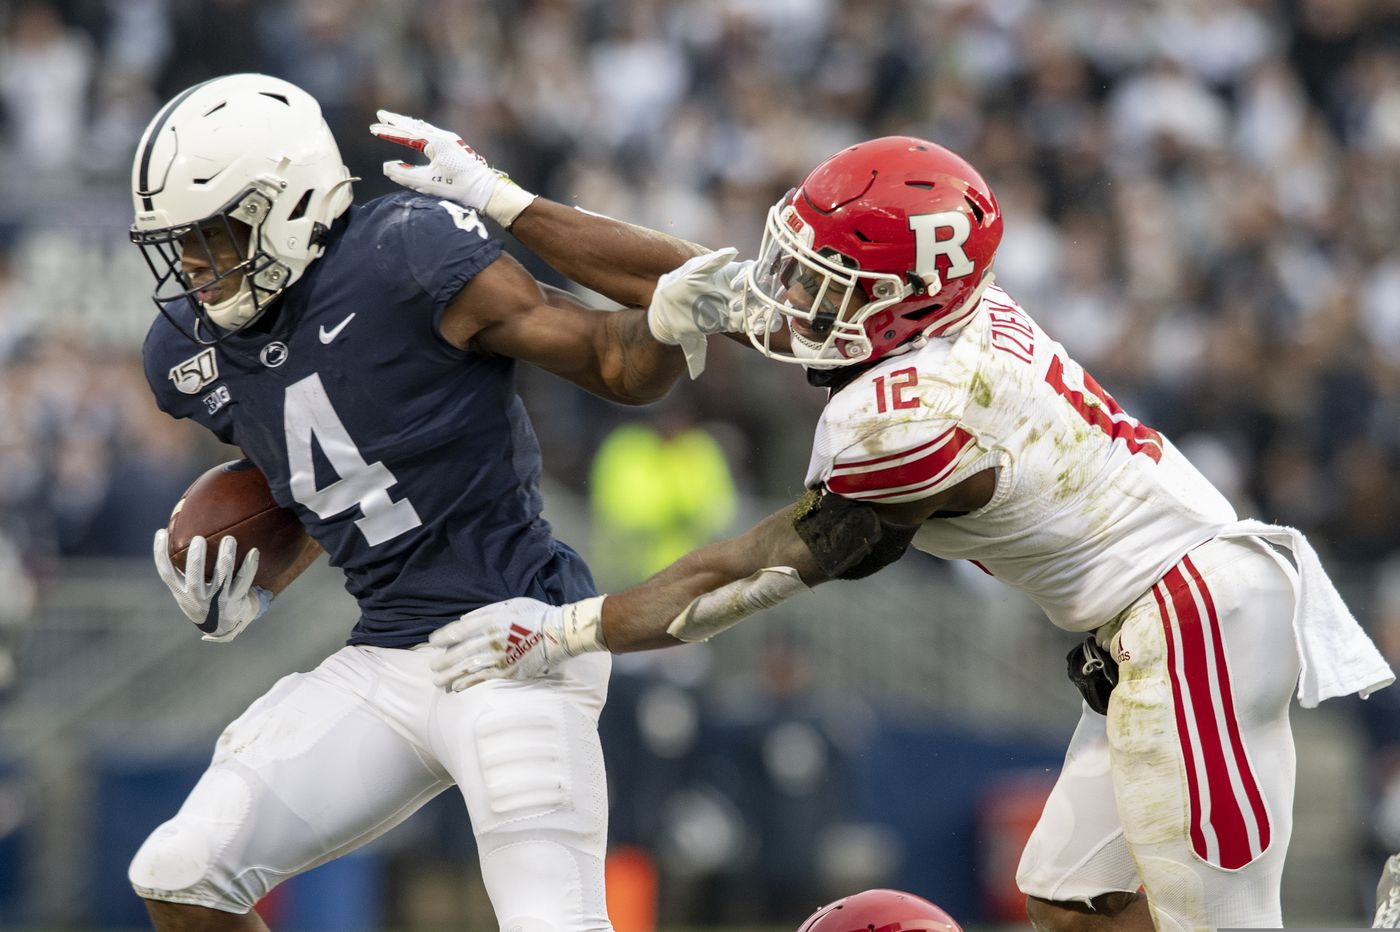 Three takeaways from Penn State's 27-6 victory over Rutgers